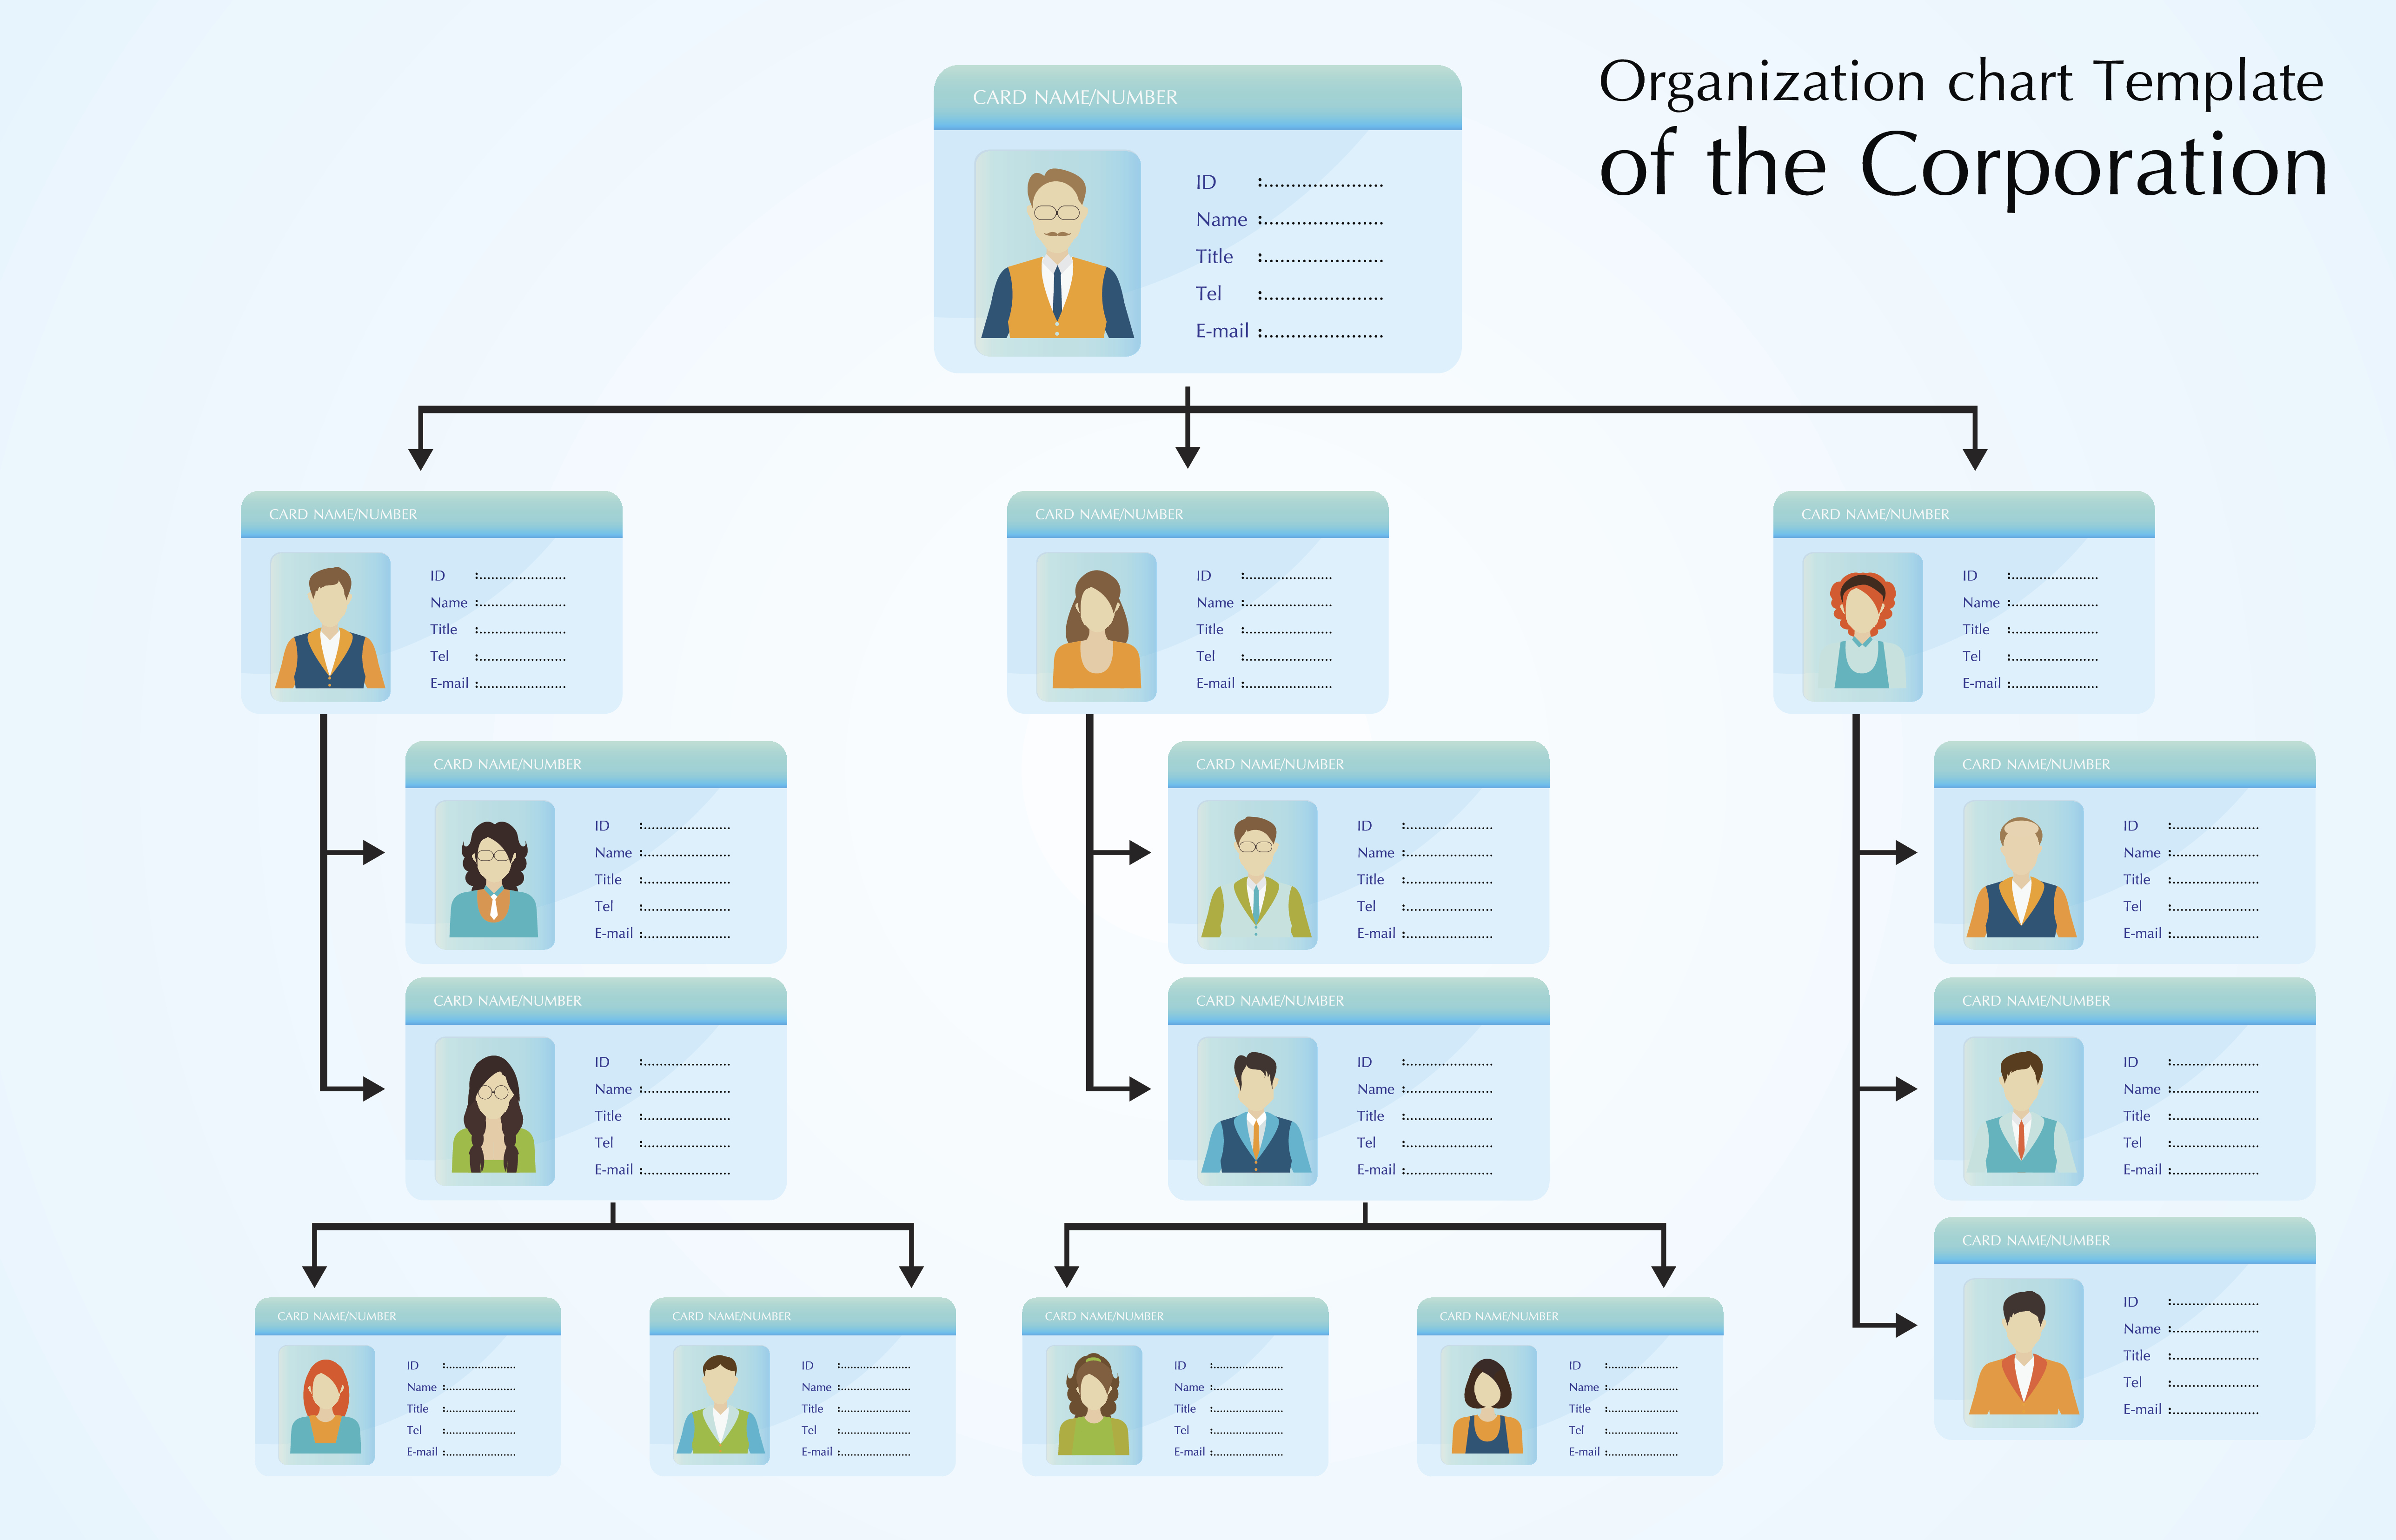 What Are the Advantages & Disadvantages of Hierarchical Structure